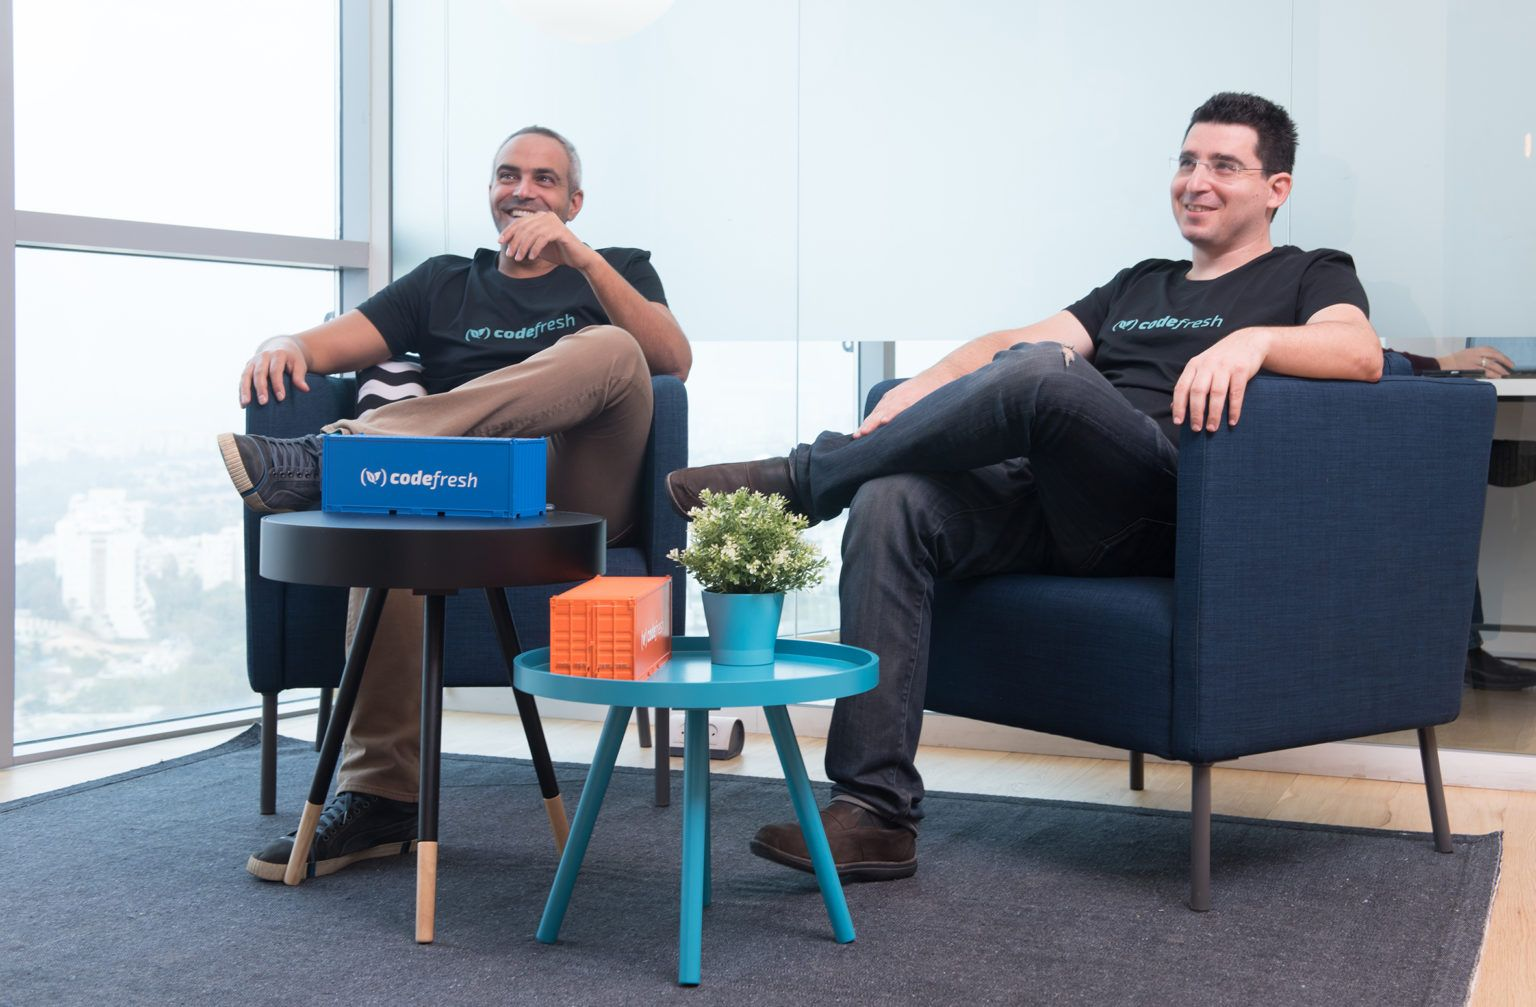 Israeli startup Codefresh scores $27M in Series C round